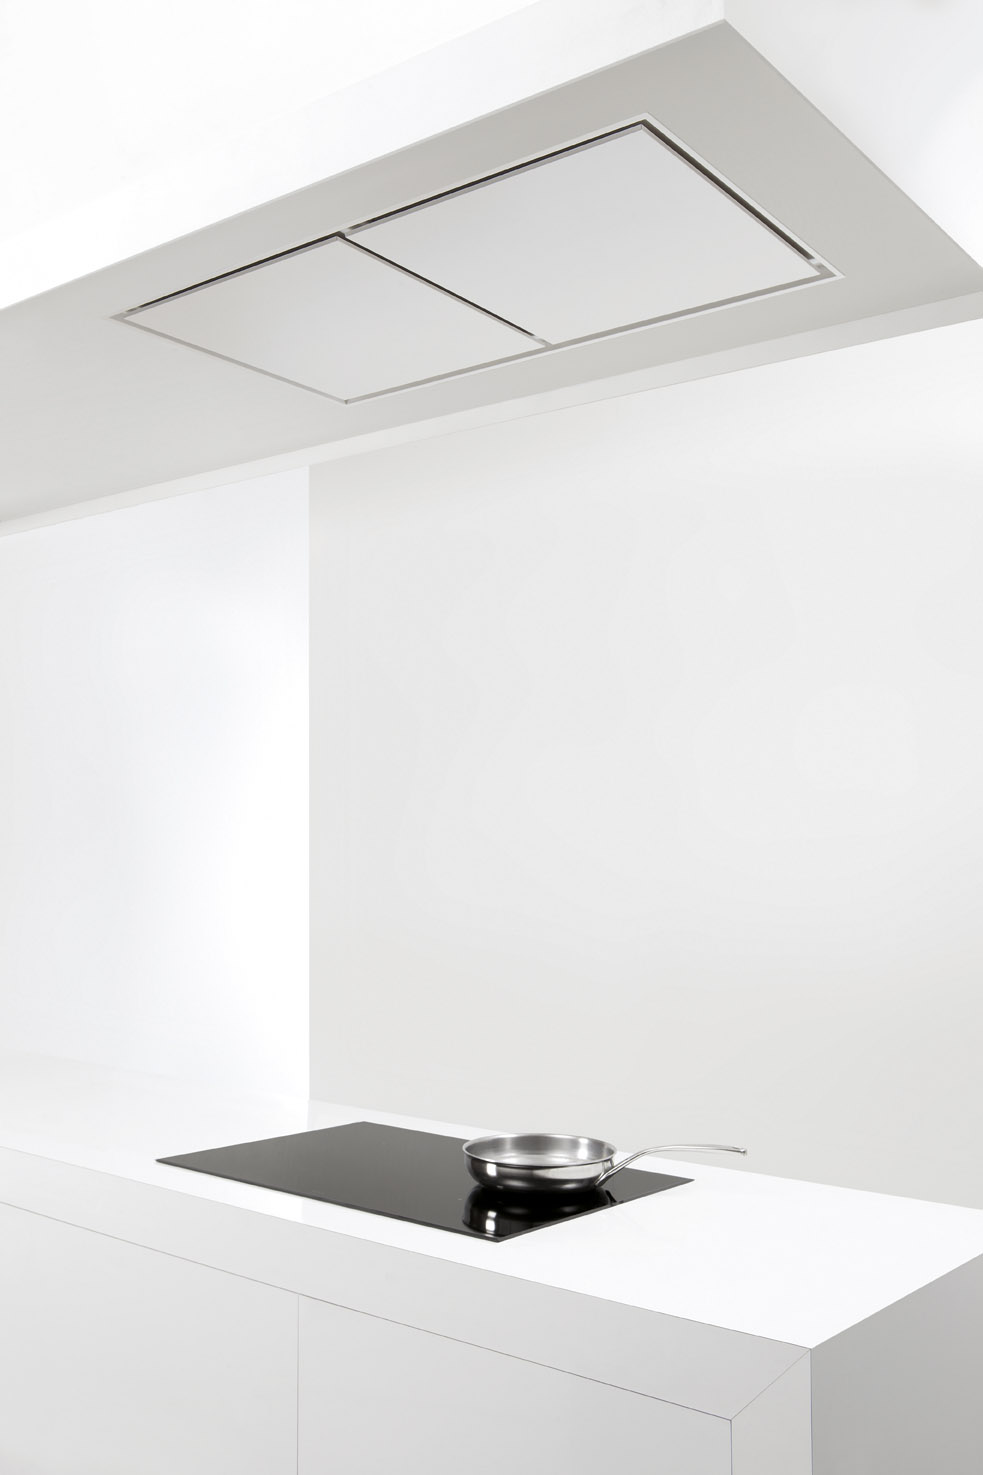 Hotte de plafond encastrable en acier inoxydable 856 maxi pure line by novy for Comhotte plafond siemens